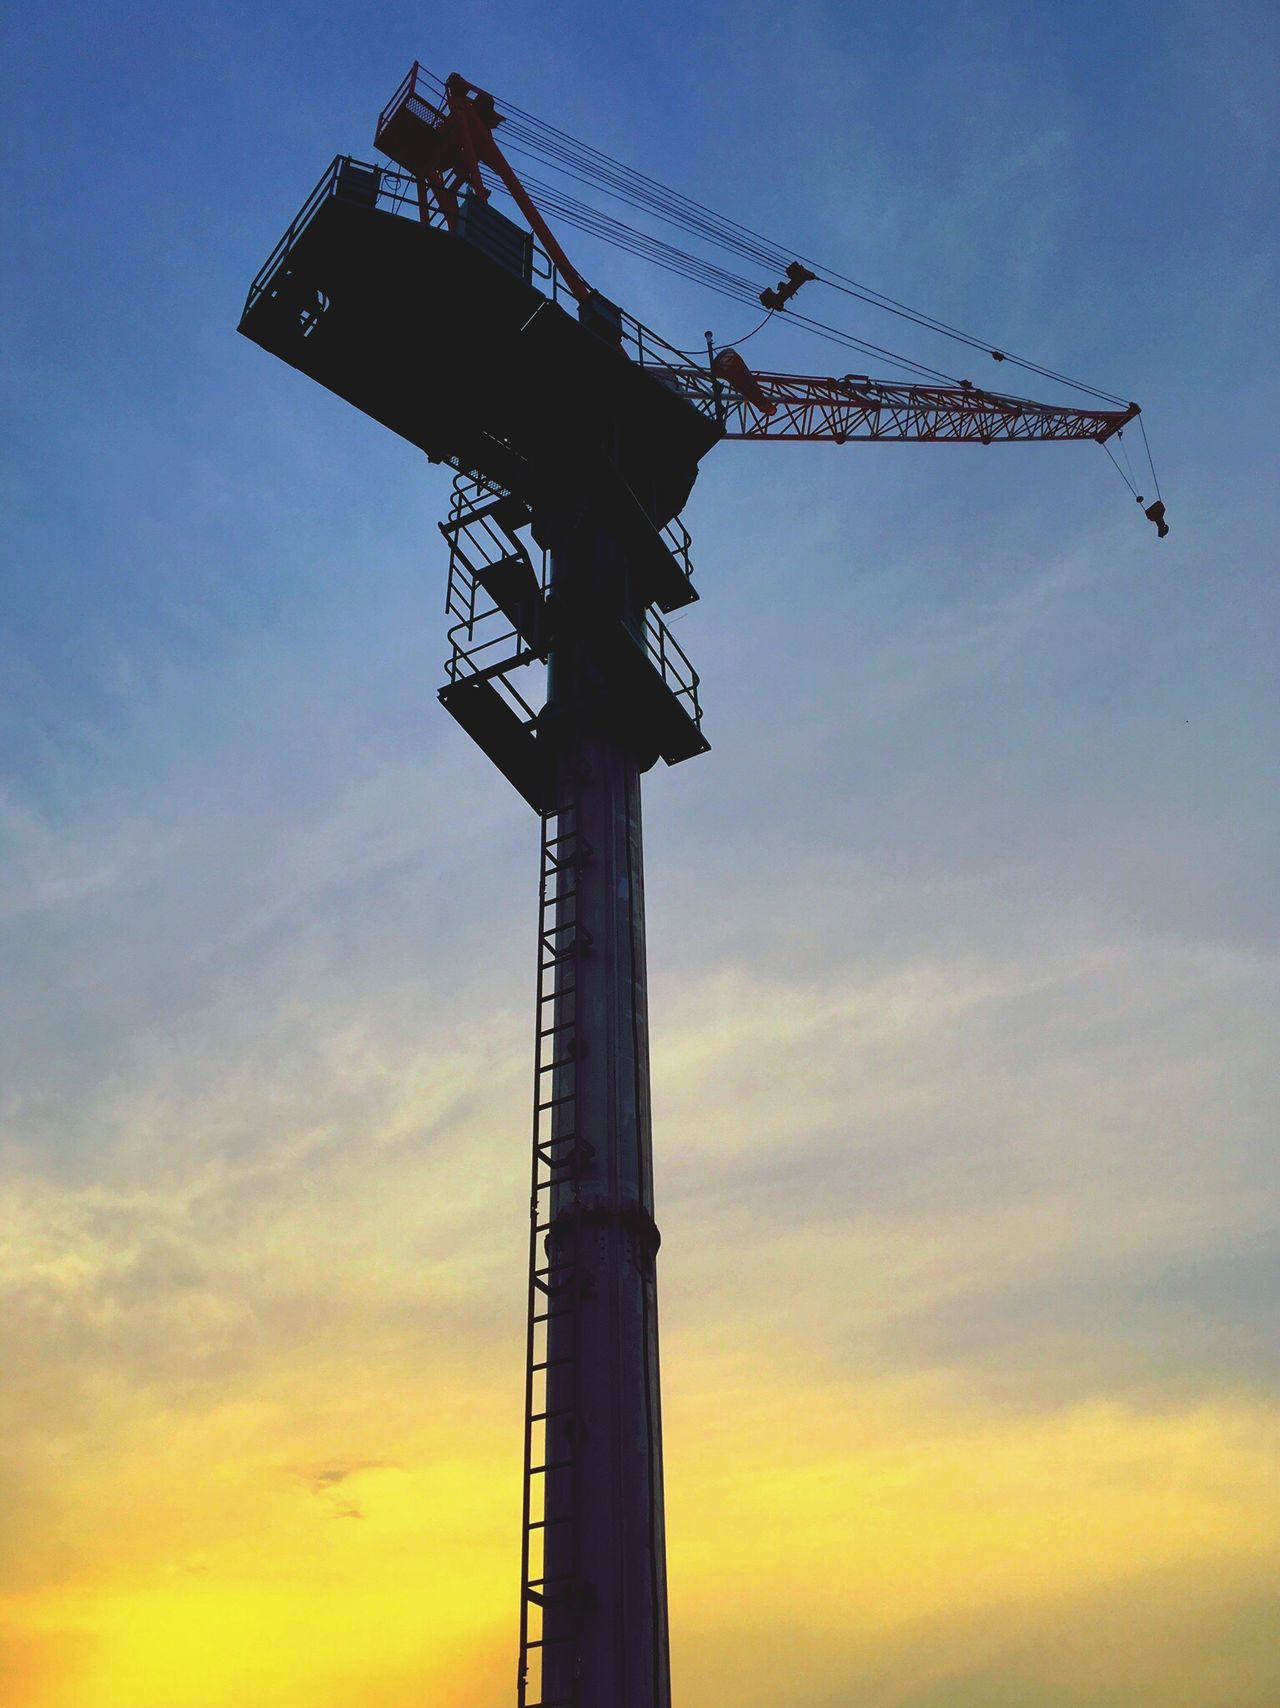 実家近く。 Sky Low Angle View No People Sunset Technology Industry Day Crane Crane - Construction Machinery Construction Tokyo Tokyo Days Clouds And Sky Cloud - Sky Evening Sky Tadaa Community Hello World